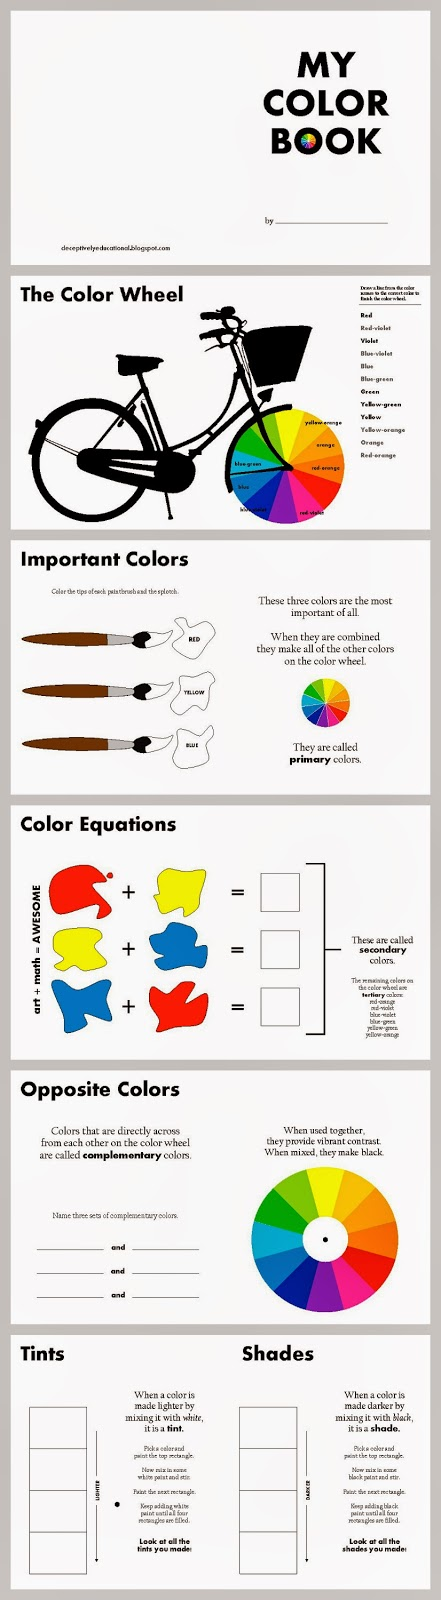 color theory for kids free printable color book - My Color Book Printable